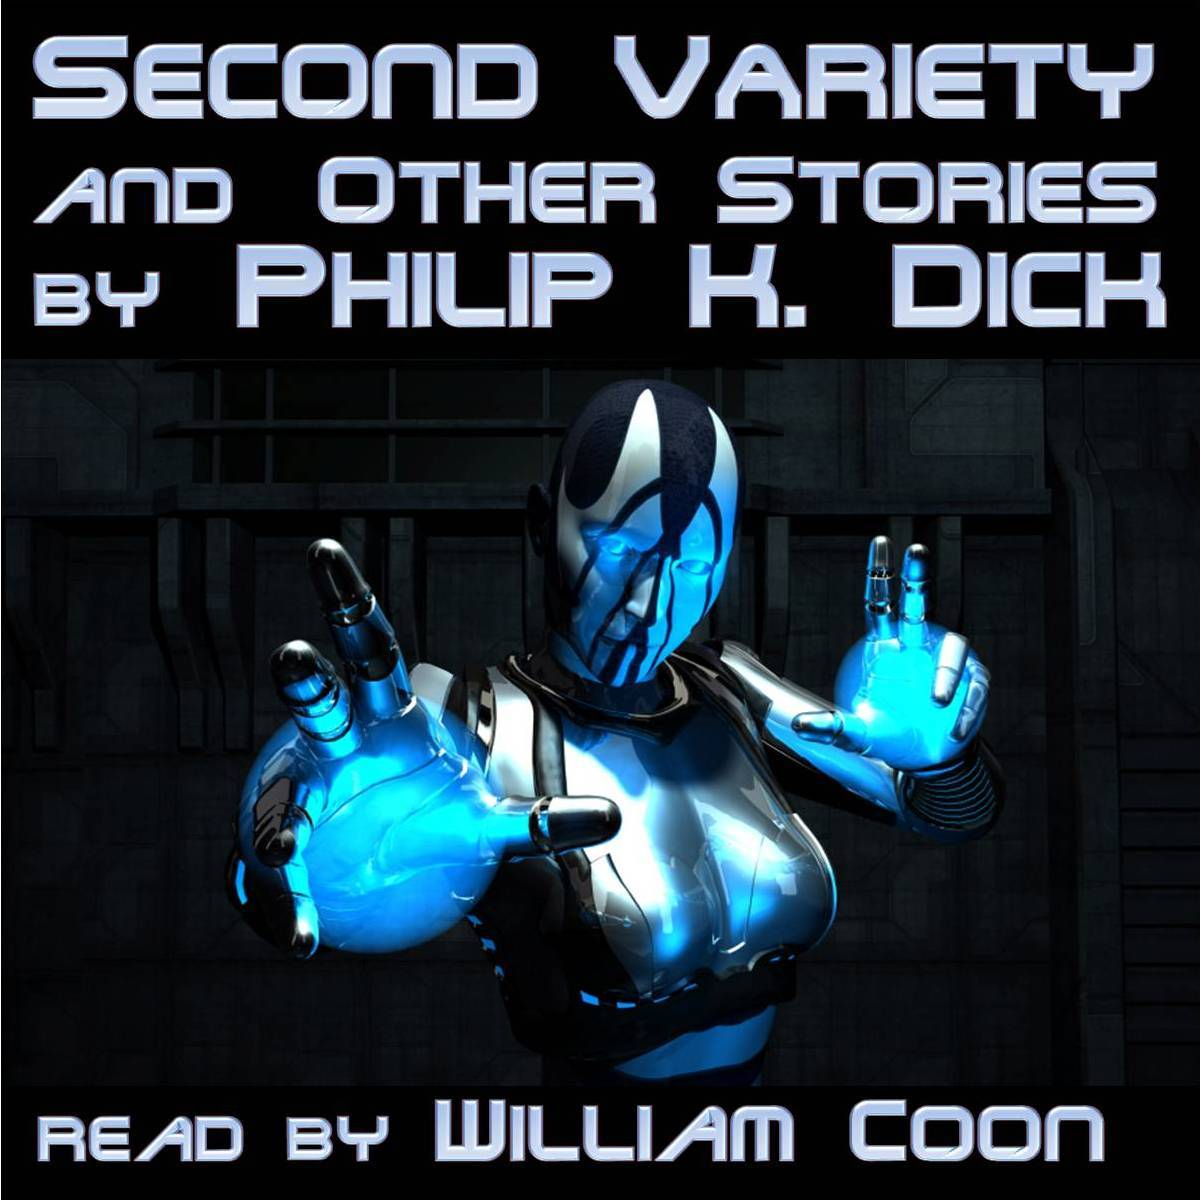 Review second variety